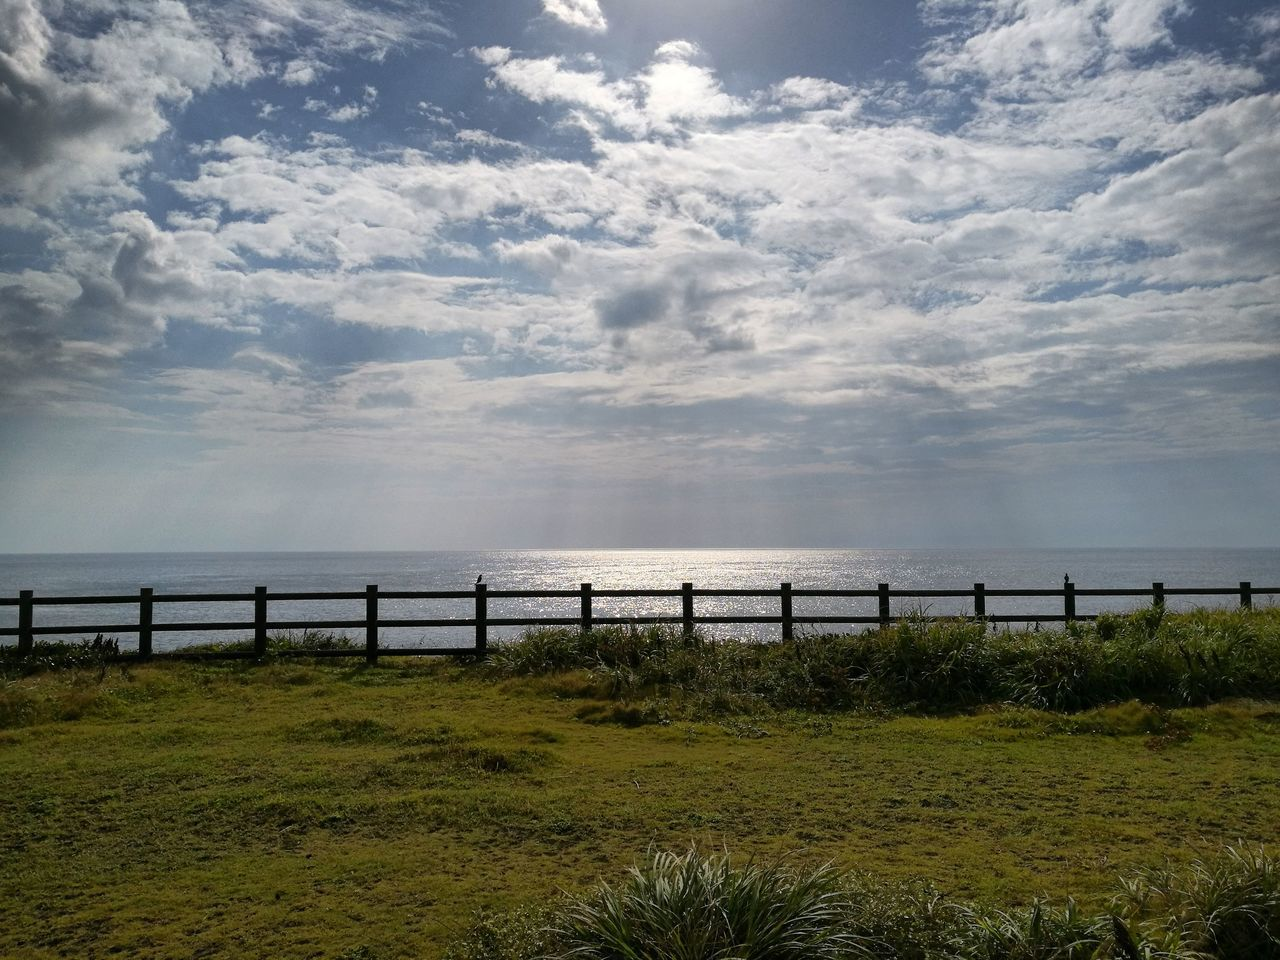 sea, cloud - sky, sky, no people, outdoors, scenics, nature, day, tranquil scene, grass, tranquility, horizon over water, water, beauty in nature